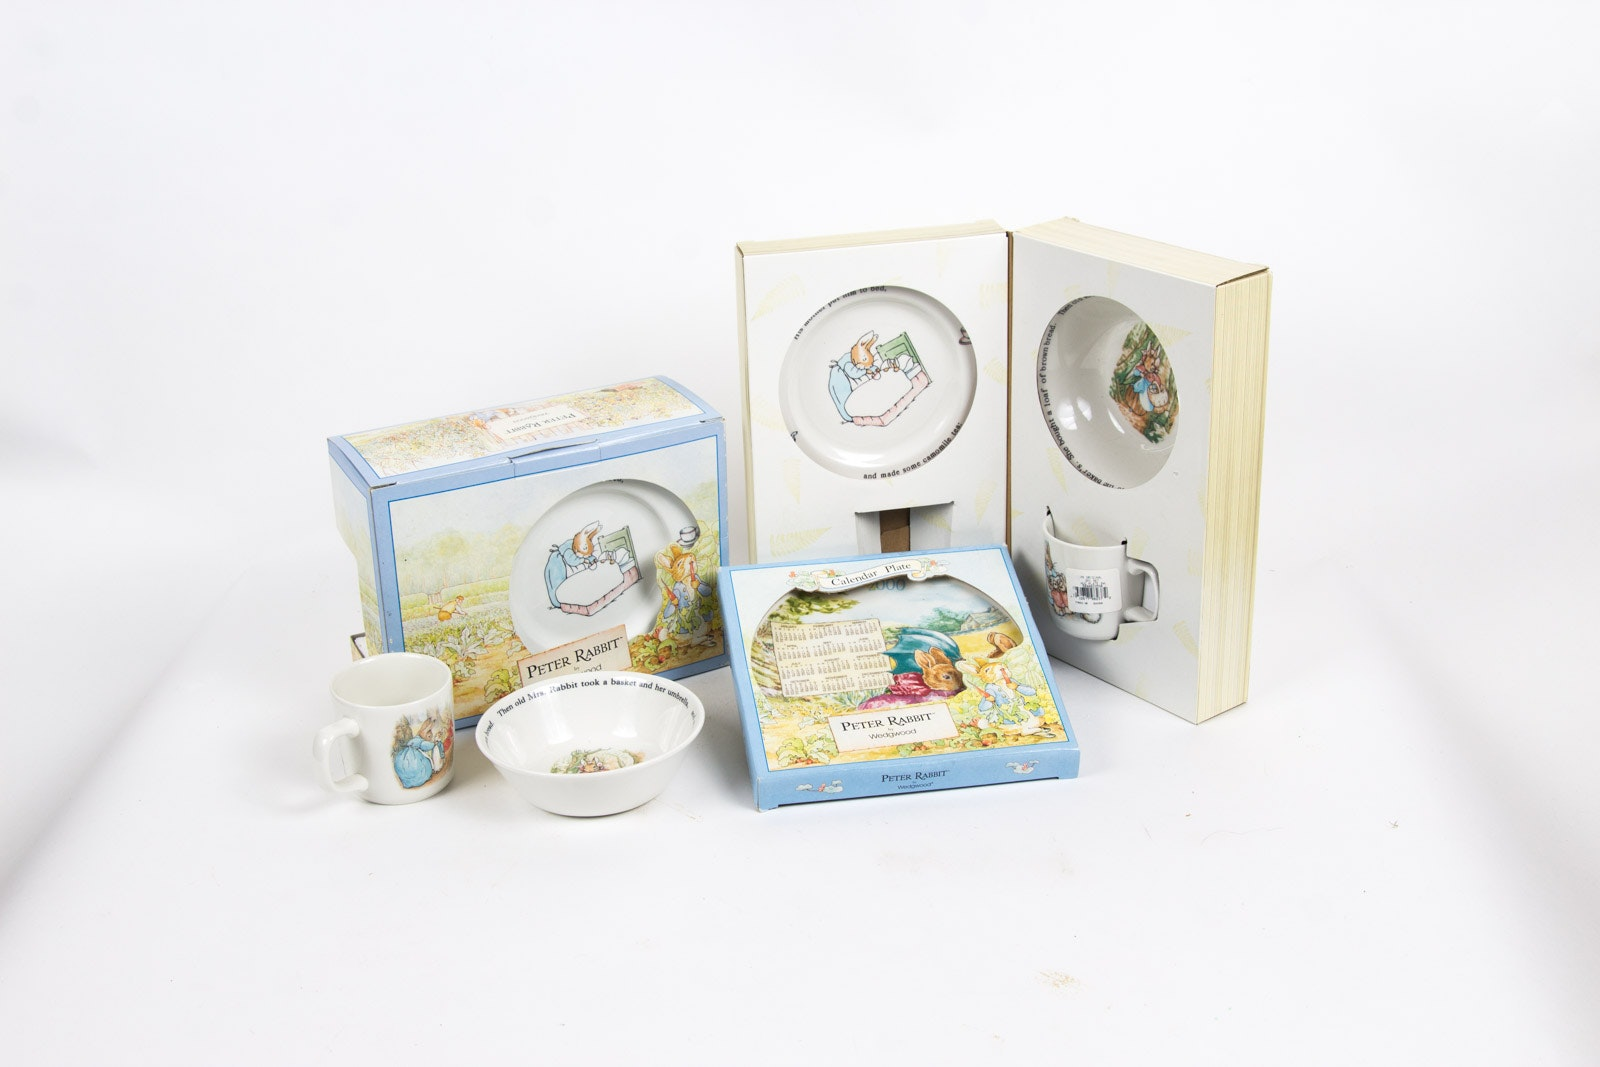 """""""Peter Rabbit"""" Porcelain Tableware and Decorative Plate By Wedgwood"""